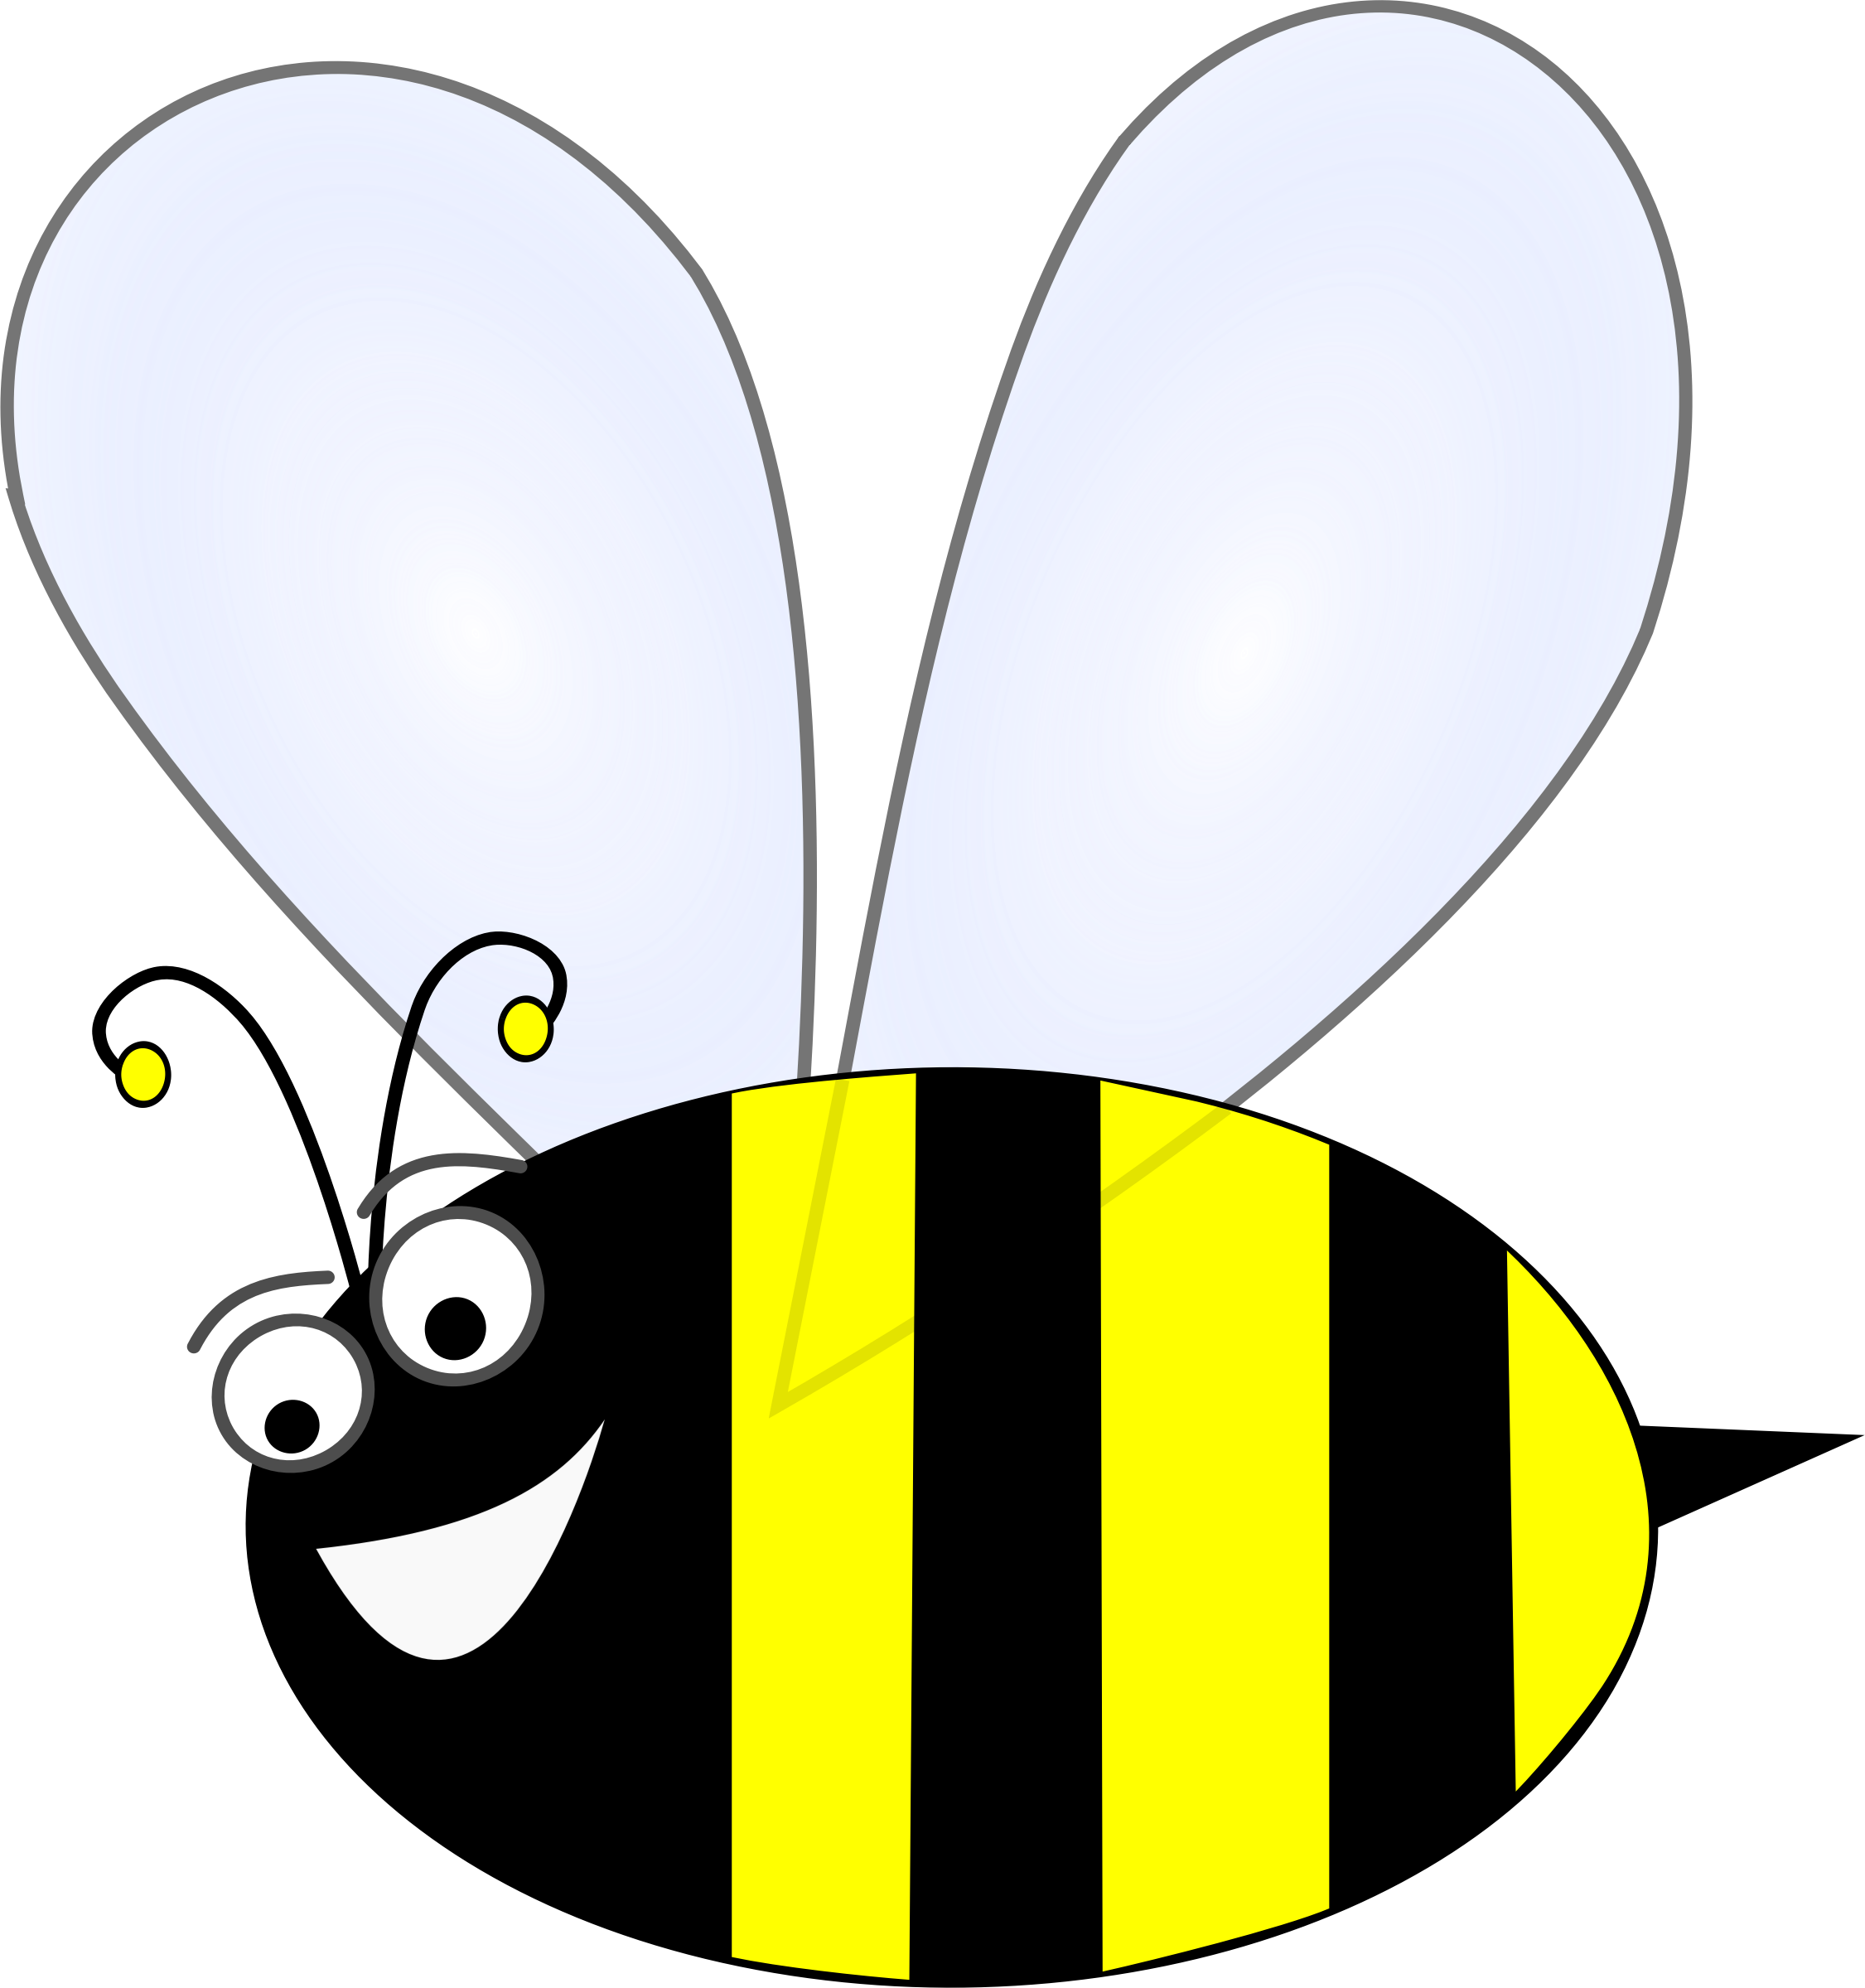 Insect clipart happy. Bee remix big image